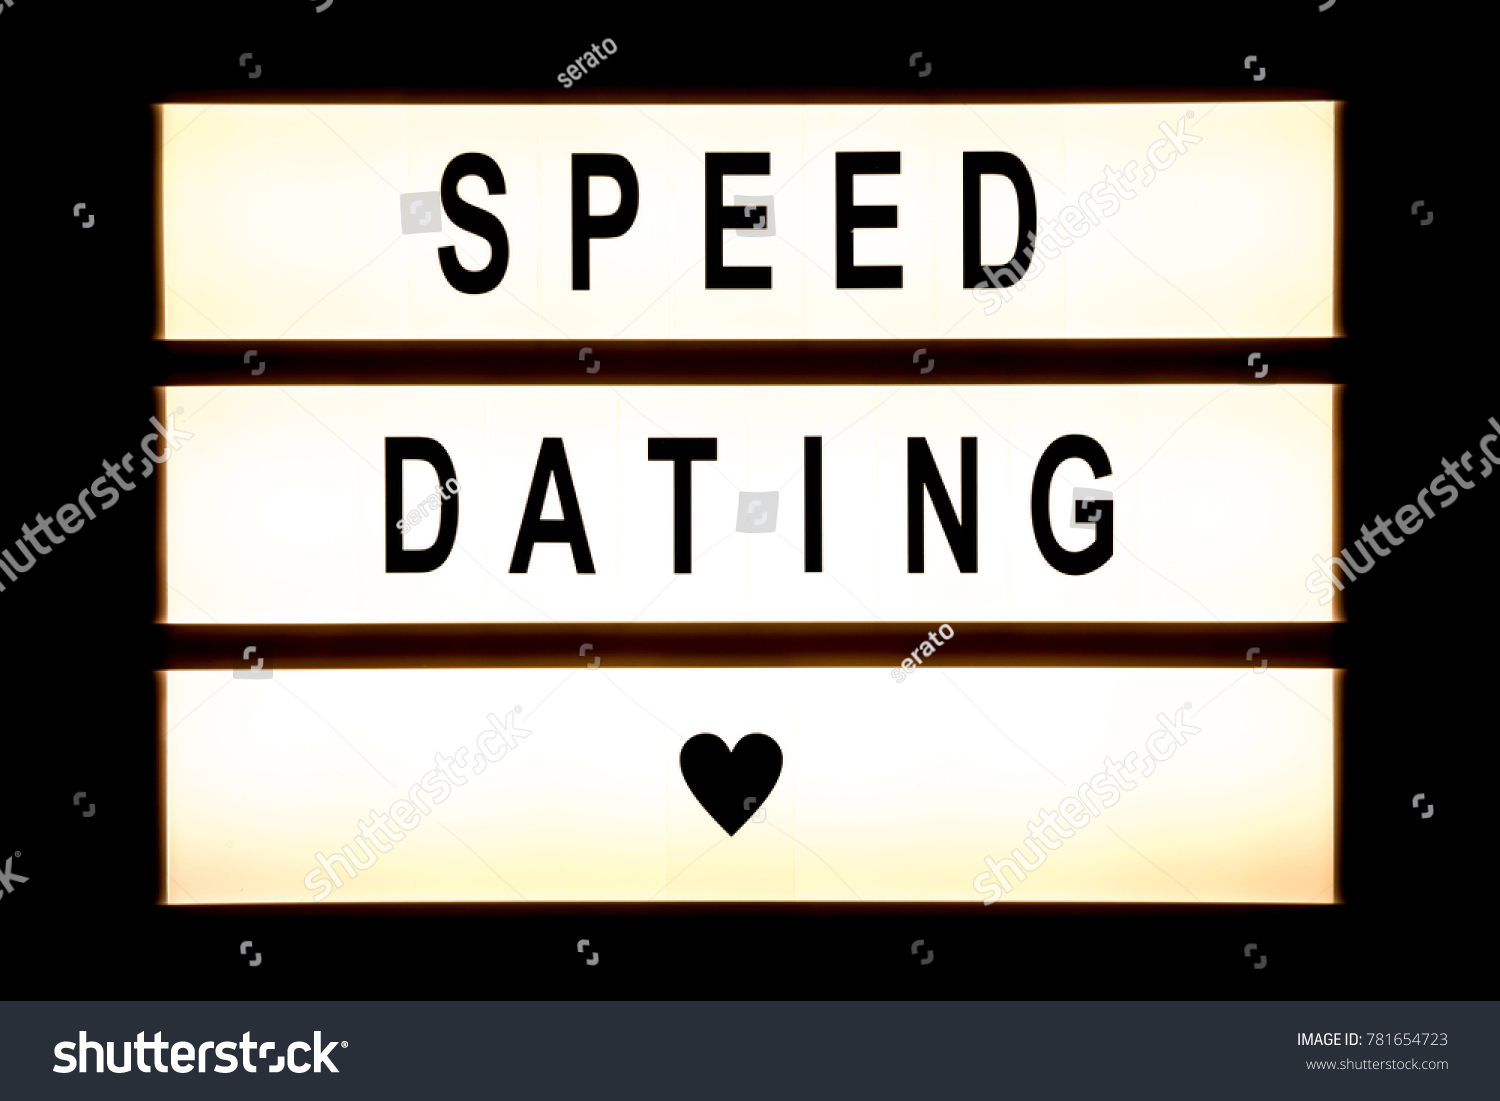 Speed dating hanging light box sign board. #781654723